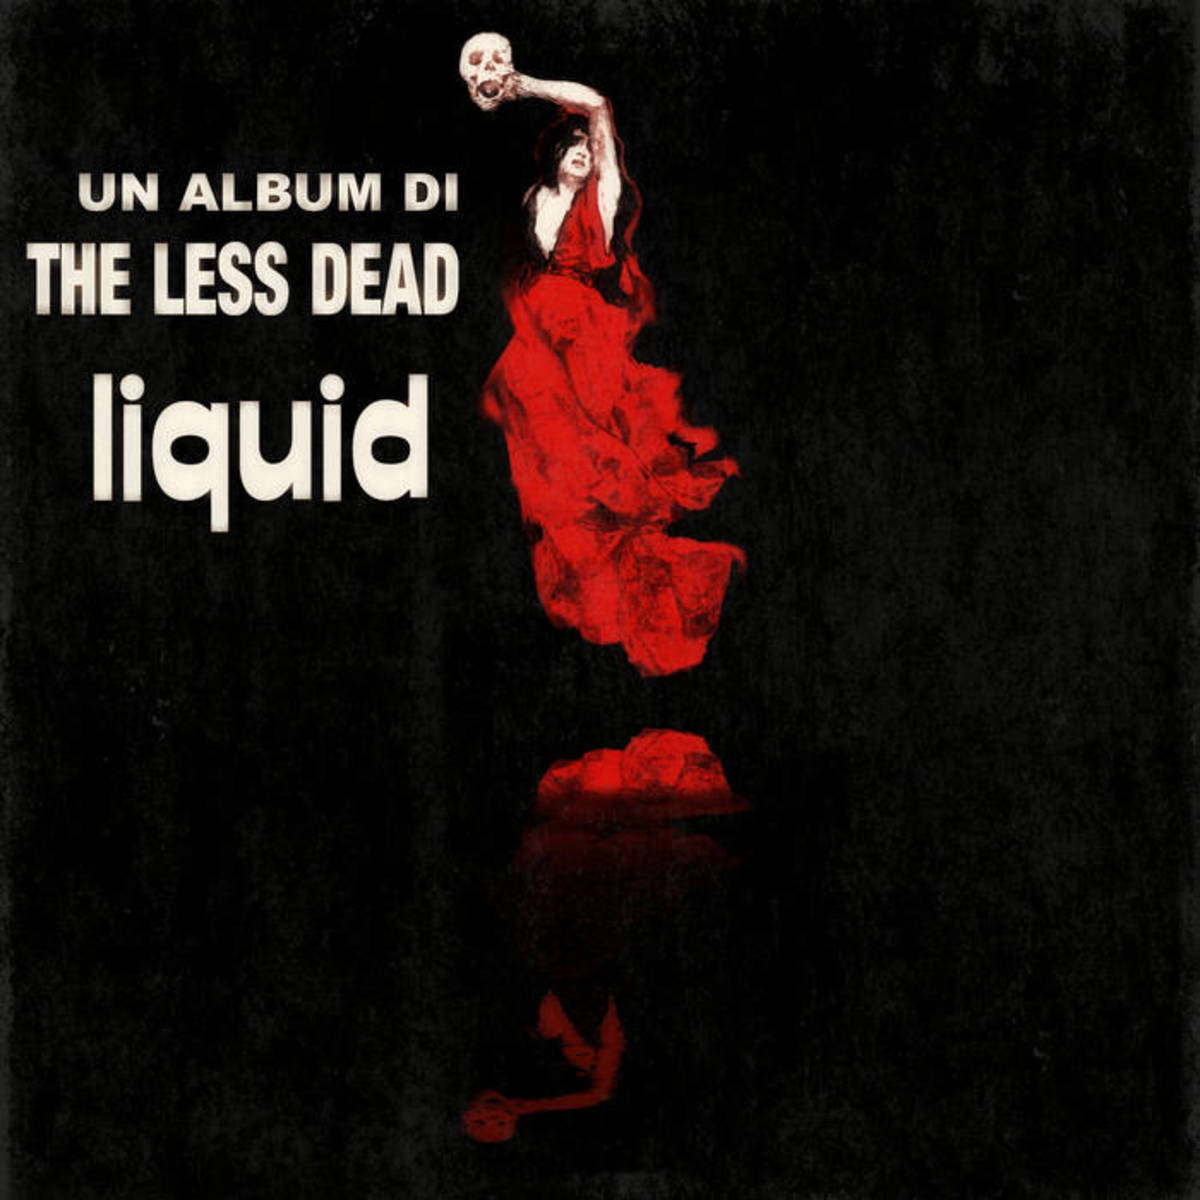 synth-album-review-liquid-by-the-less-dead